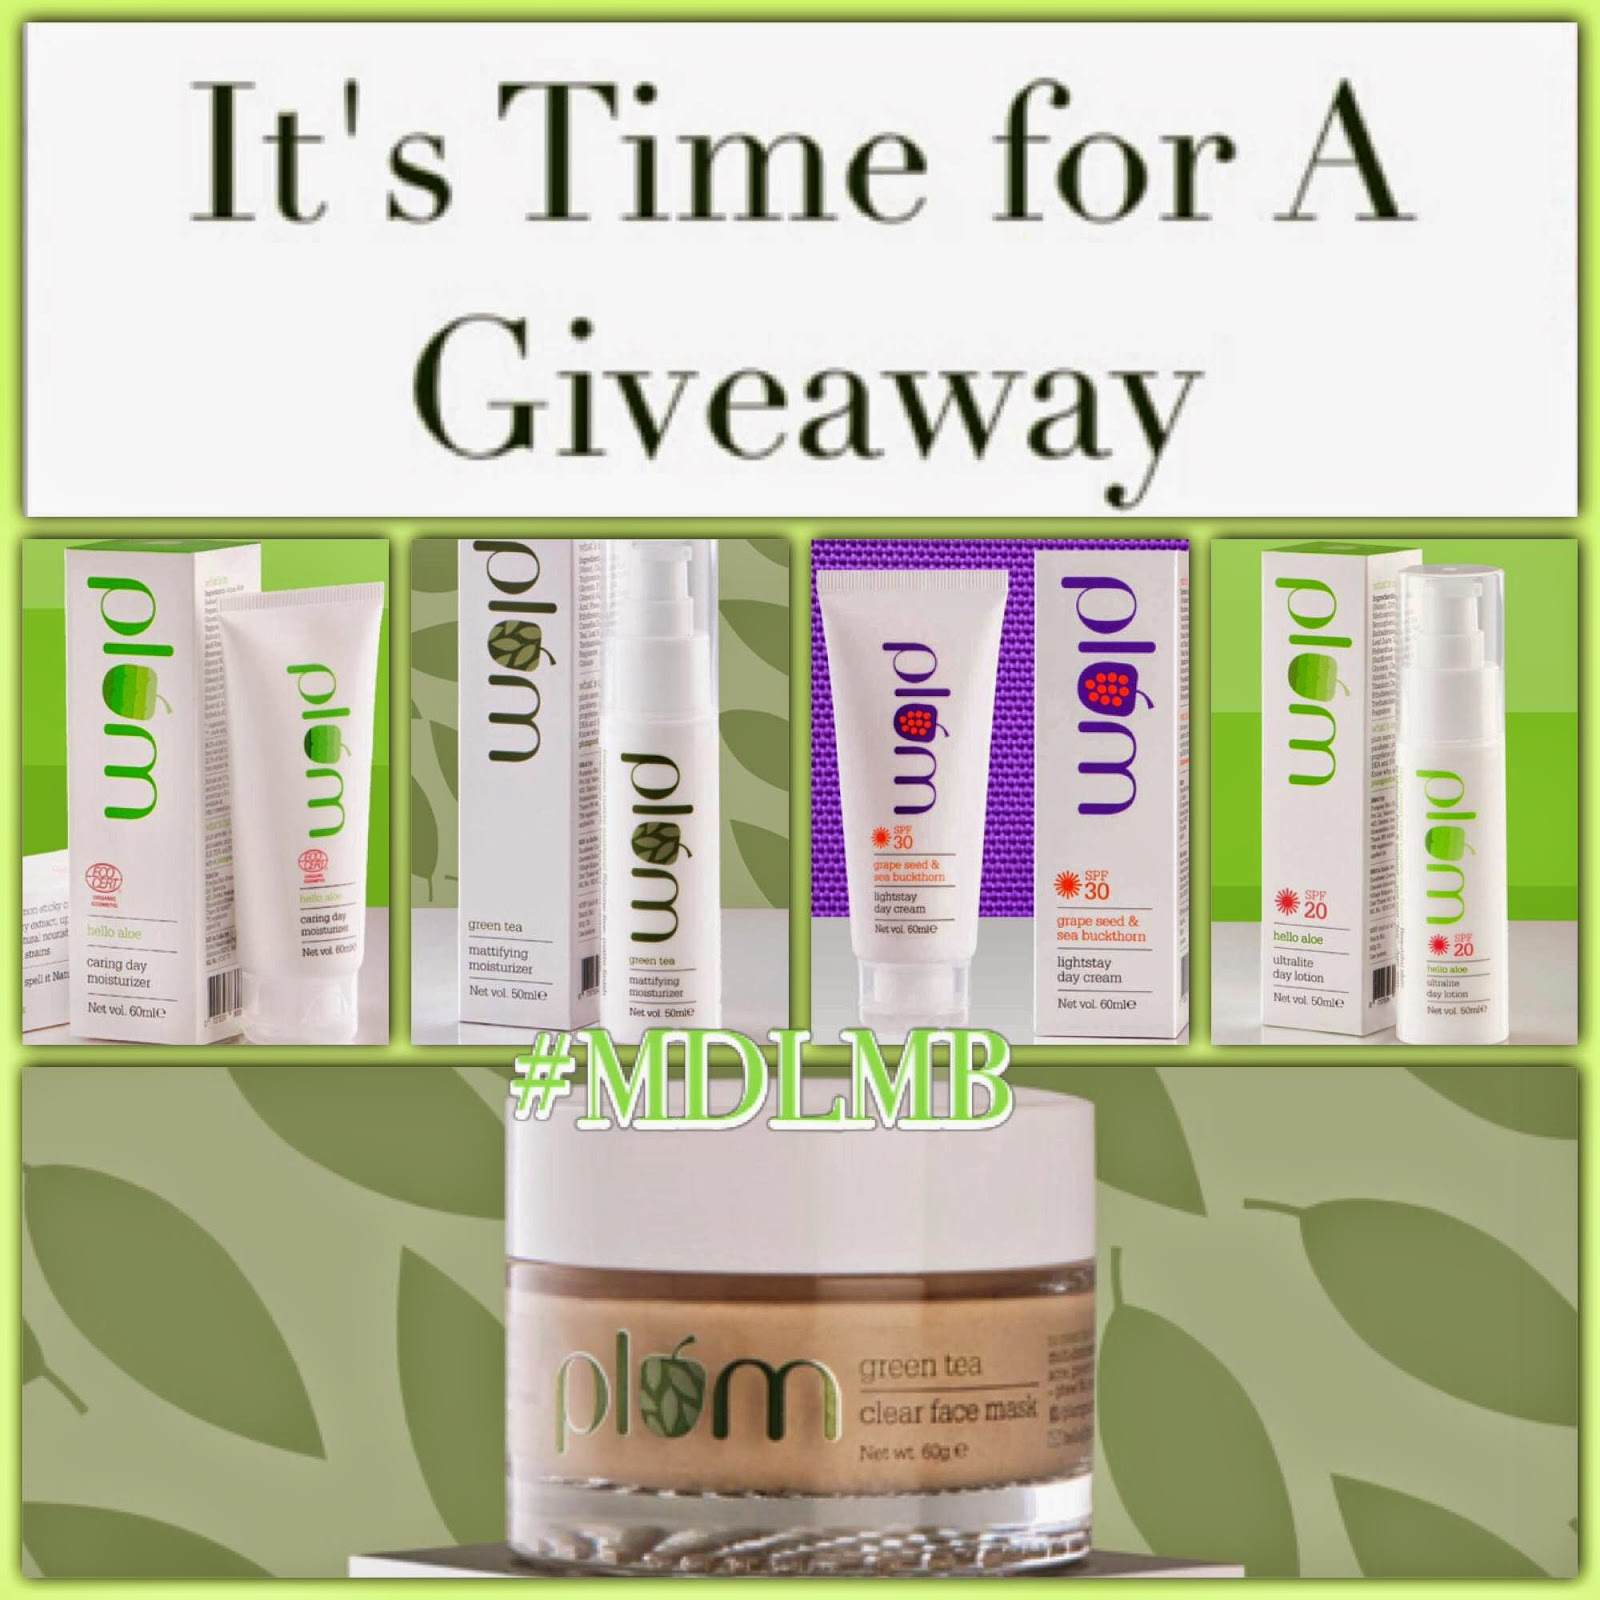 Instagram Giveaway: Summer Ready with Plum Goodness | MillionDollarLooks Makeup & Beauty Blog, Win skin care products from Plum goodness, paraben free skin caare products, Beauty giveaway, indian makeup and beauty blog, Indian beauty blogger, Giveaway India, contest giveaway, win free goodies india